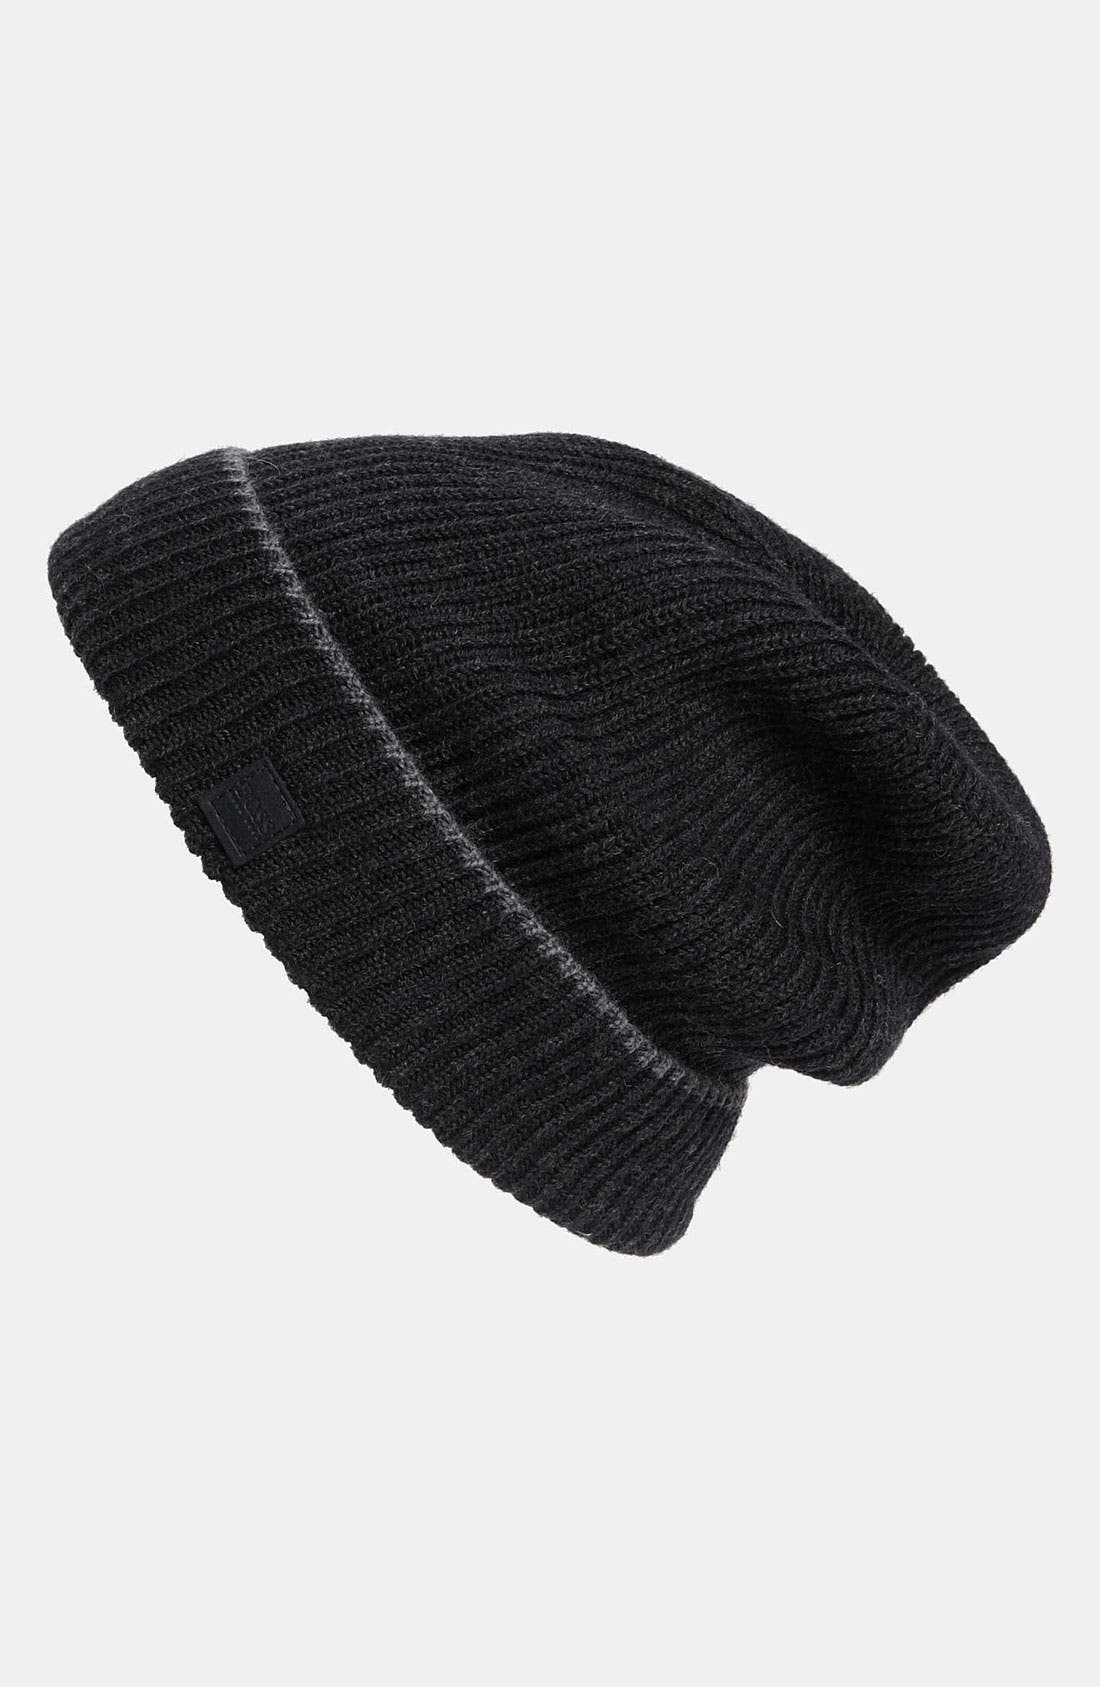 Main Image - BOSS Black 'Wotana' Wool Knit Cap